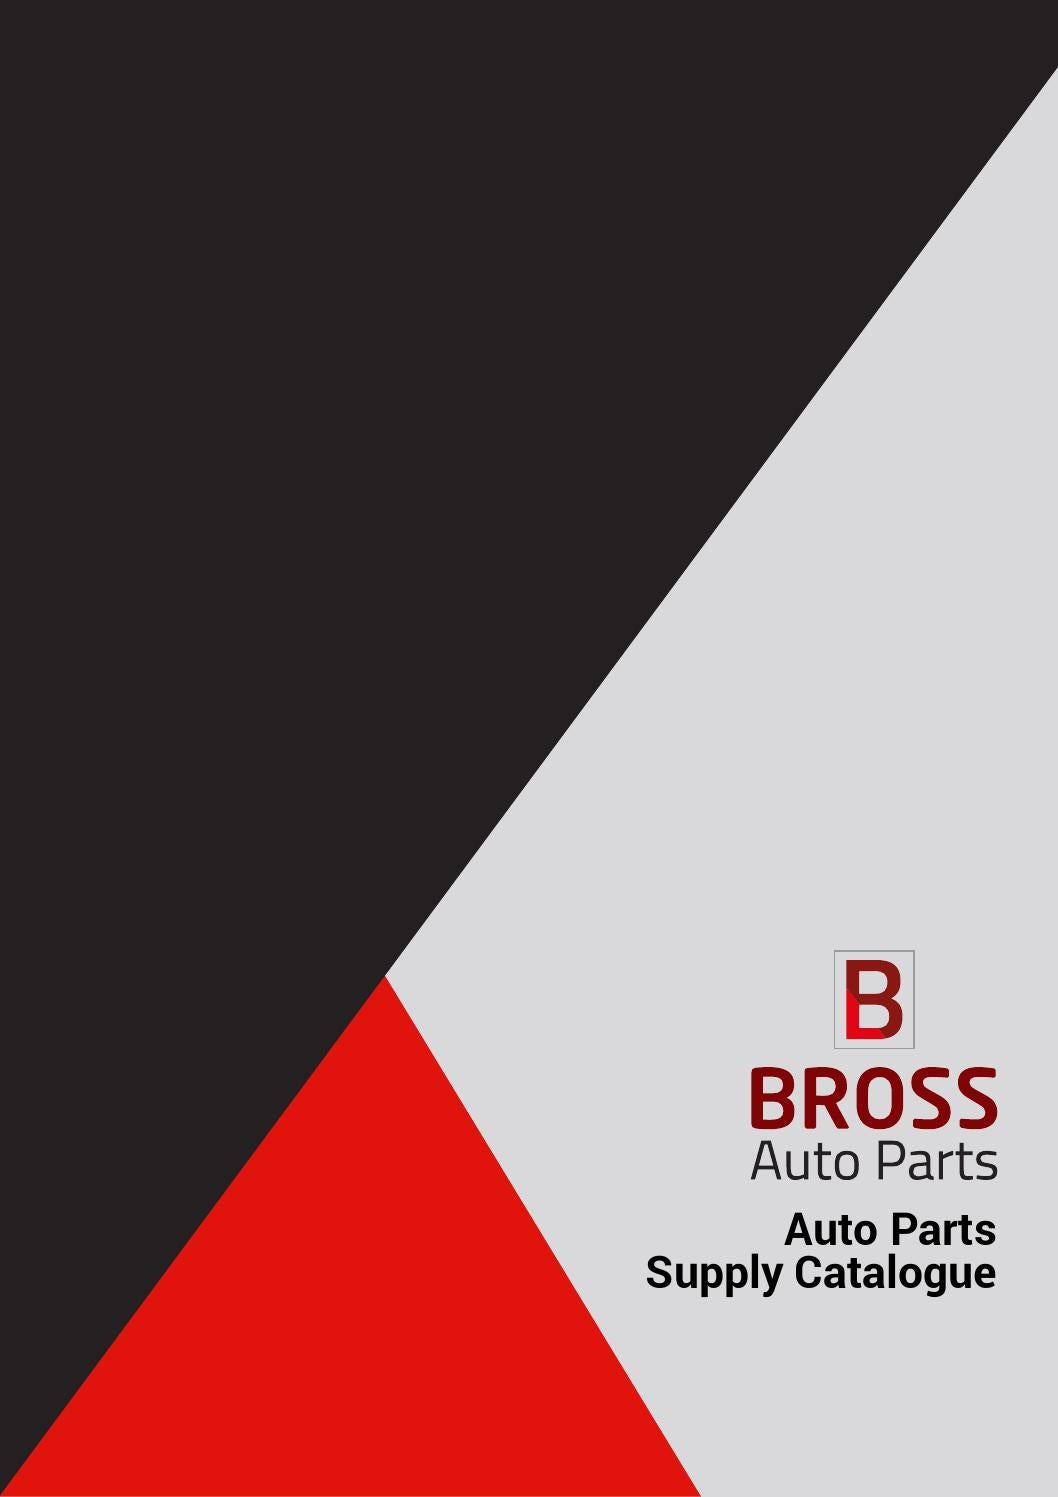 Bross'net Bross Auto Parts Supply Catalogue 2016 By Bross Auto Parts